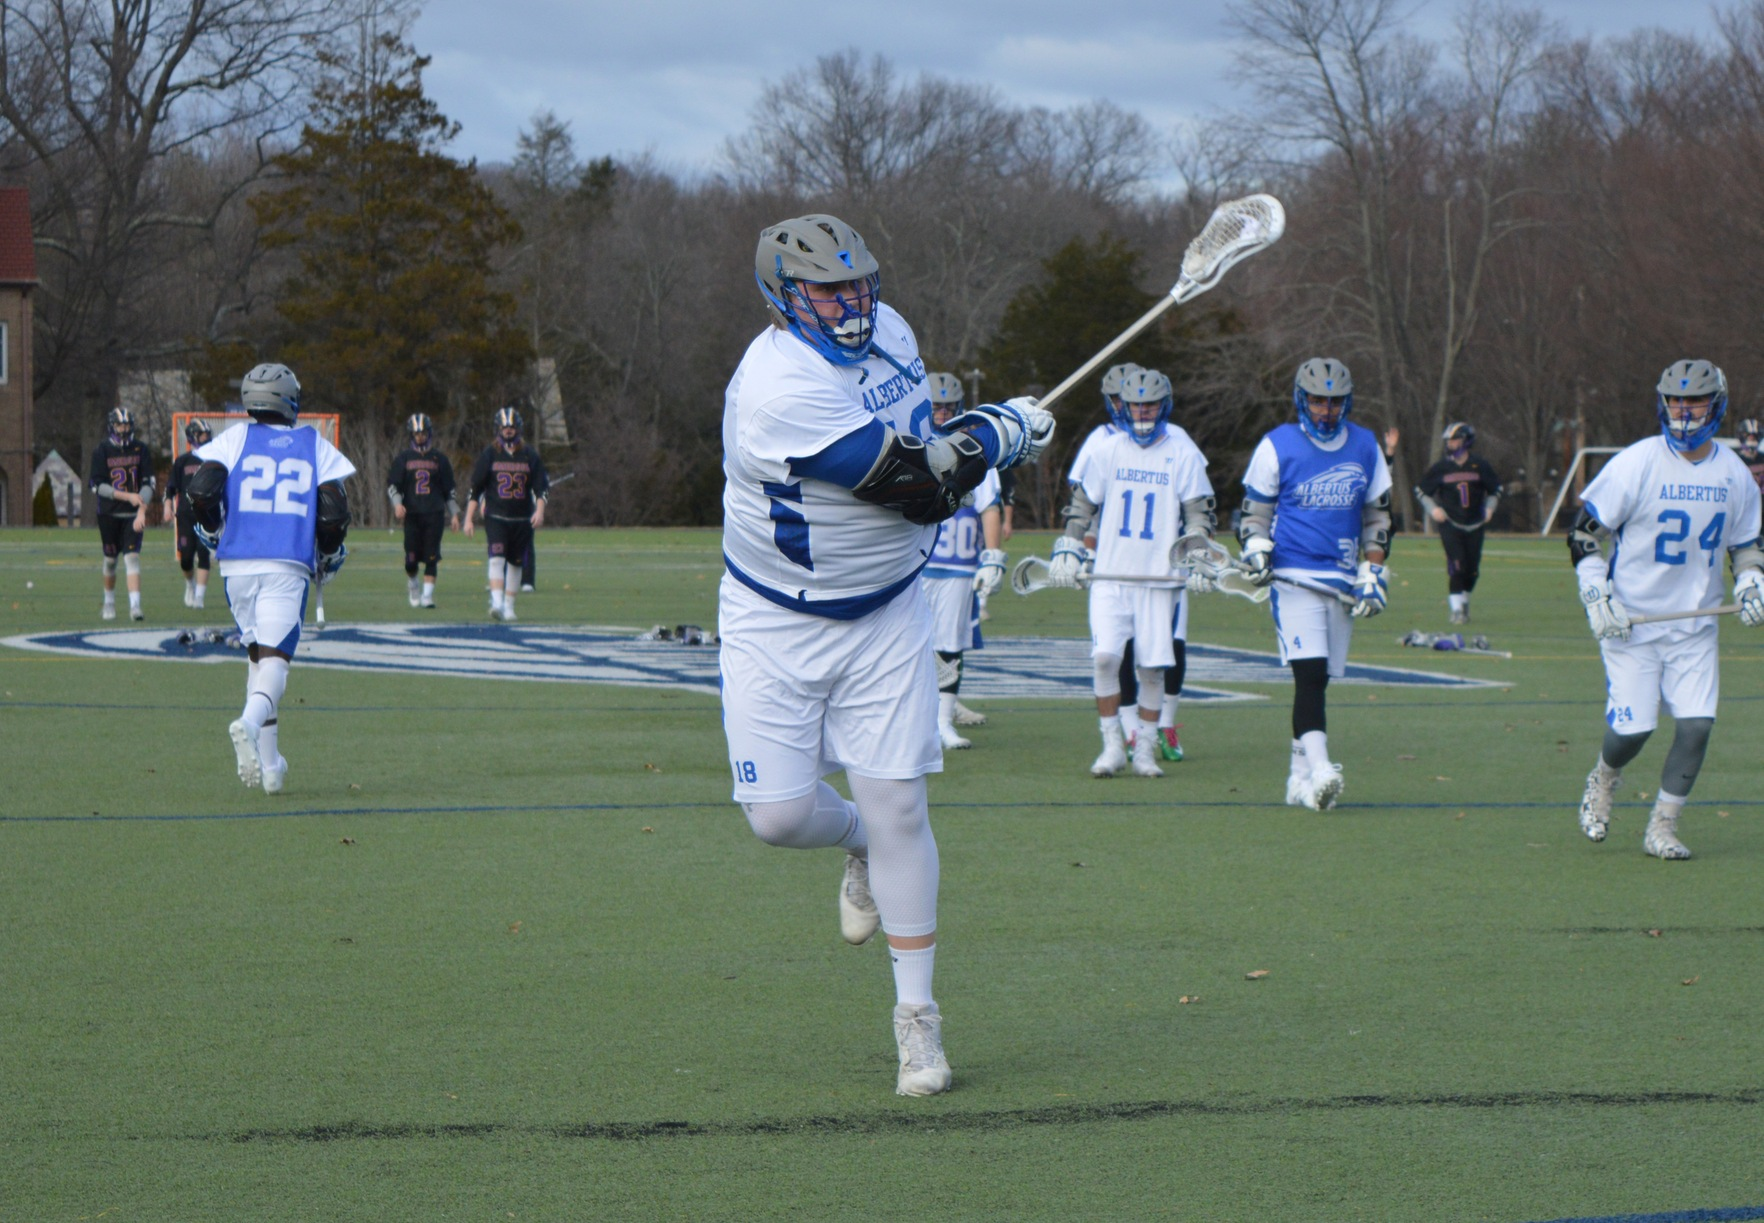 Men's Lacrosse Falls Short in Season Opener Against Emerson